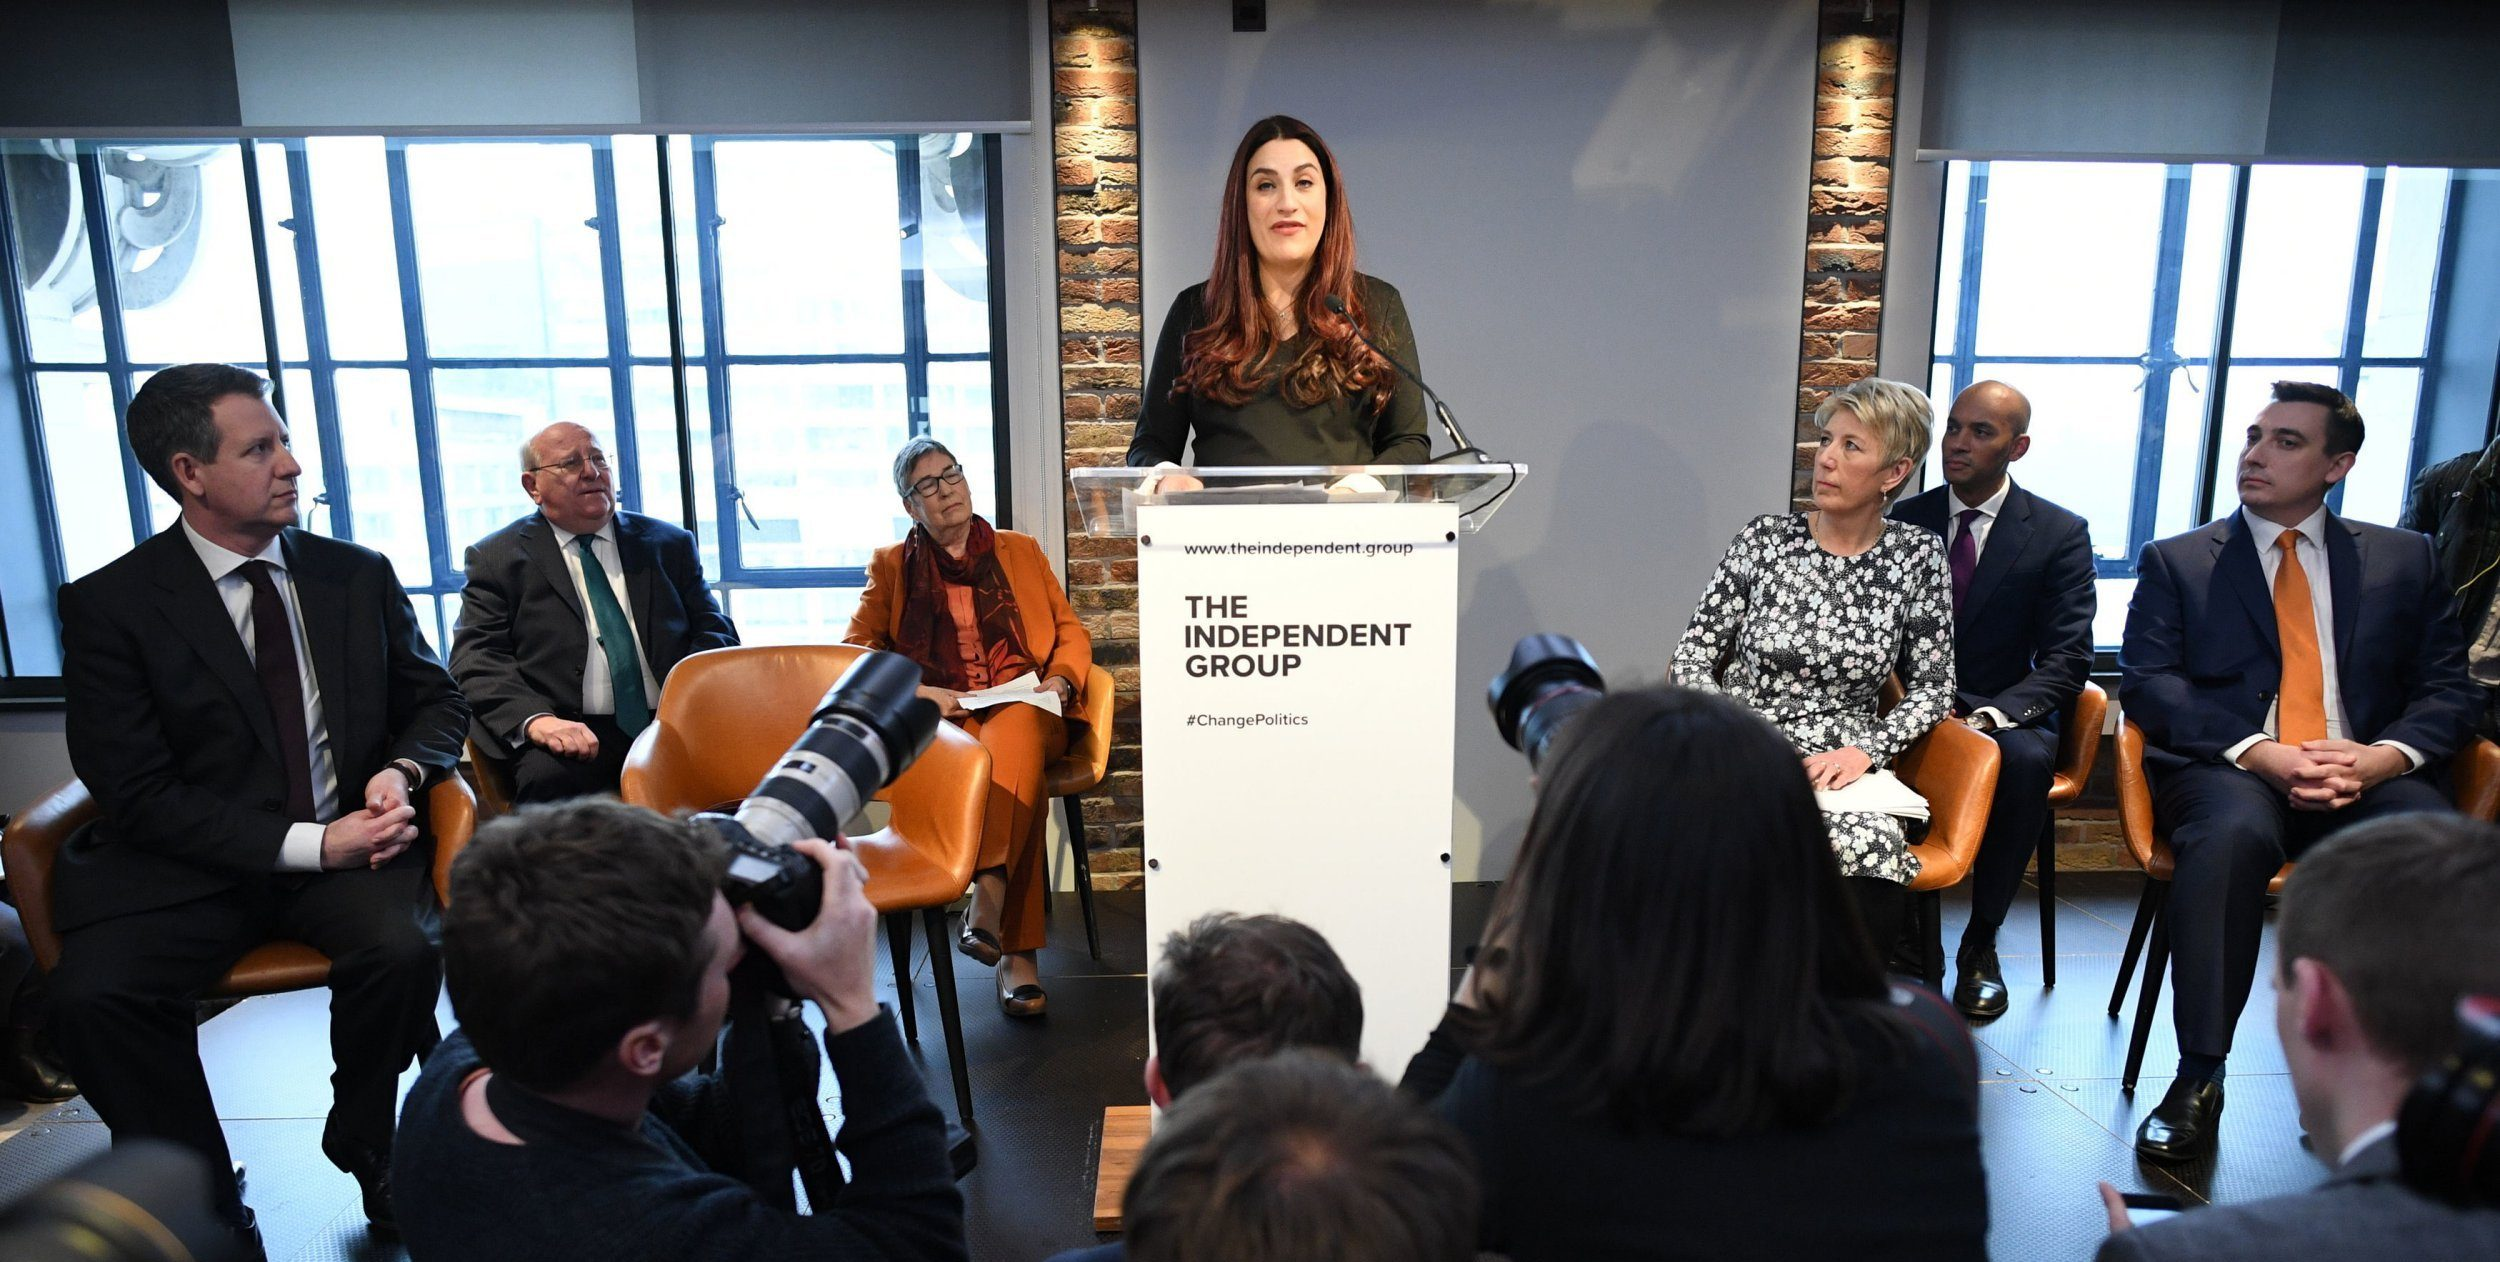 Labour MP Luciana Berger who has announced her resignation during a press conference at County Hall in Westminster, London where a group of six Labour MPs, including Chris Leslie, Chuka Umunna, Gavin Shuker, Angela Smith and Mike Gapes announced their resignation from the party. PRESS ASSOCIATION Photo. Picture date: Monday February 18, 2019. See PA story POLITICS Labour. Photo credit should read: Stefan Rousseau/PA Wire